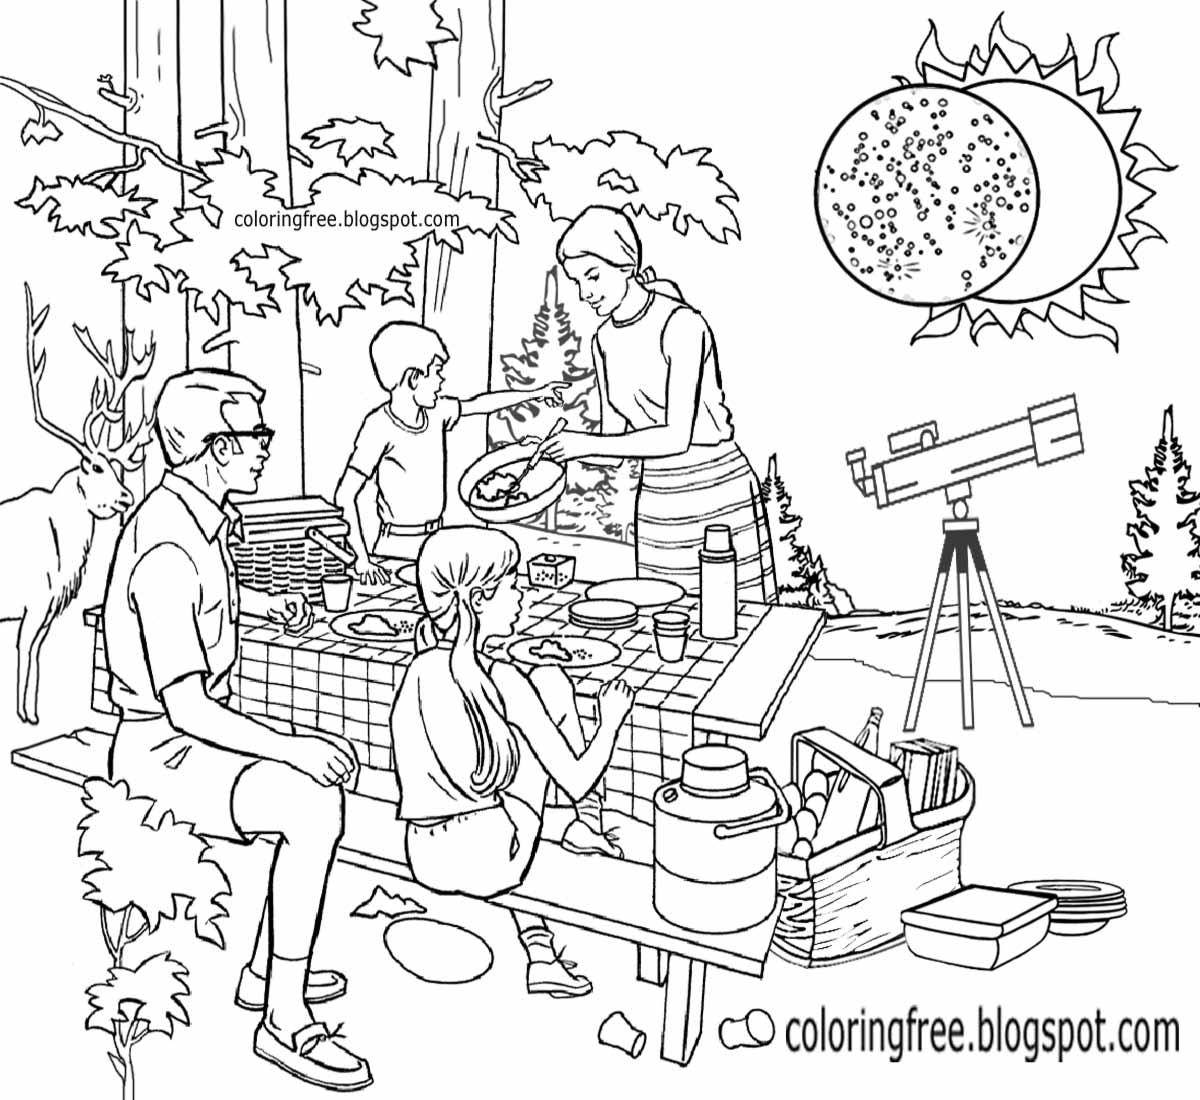 solar eclipse coloring pages - photo#12